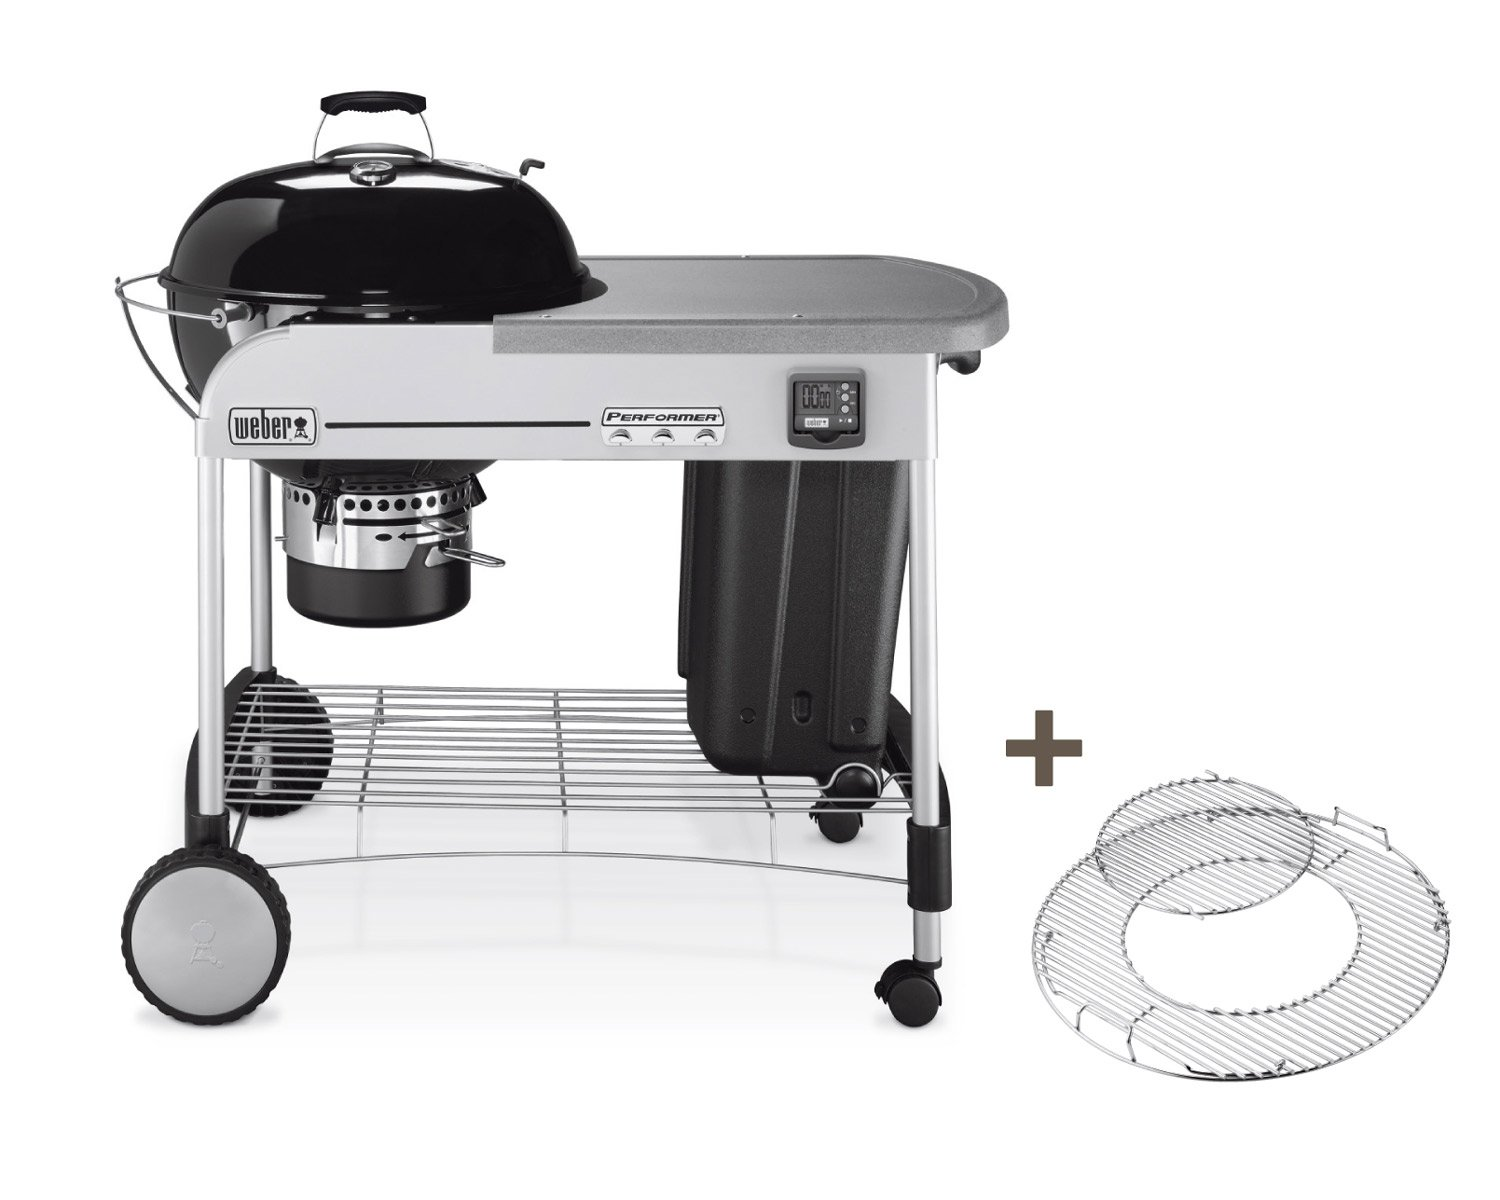 Weber Holzkohlegrill Grill Anleitung : Performer¸ premium gbs grill amazon garten